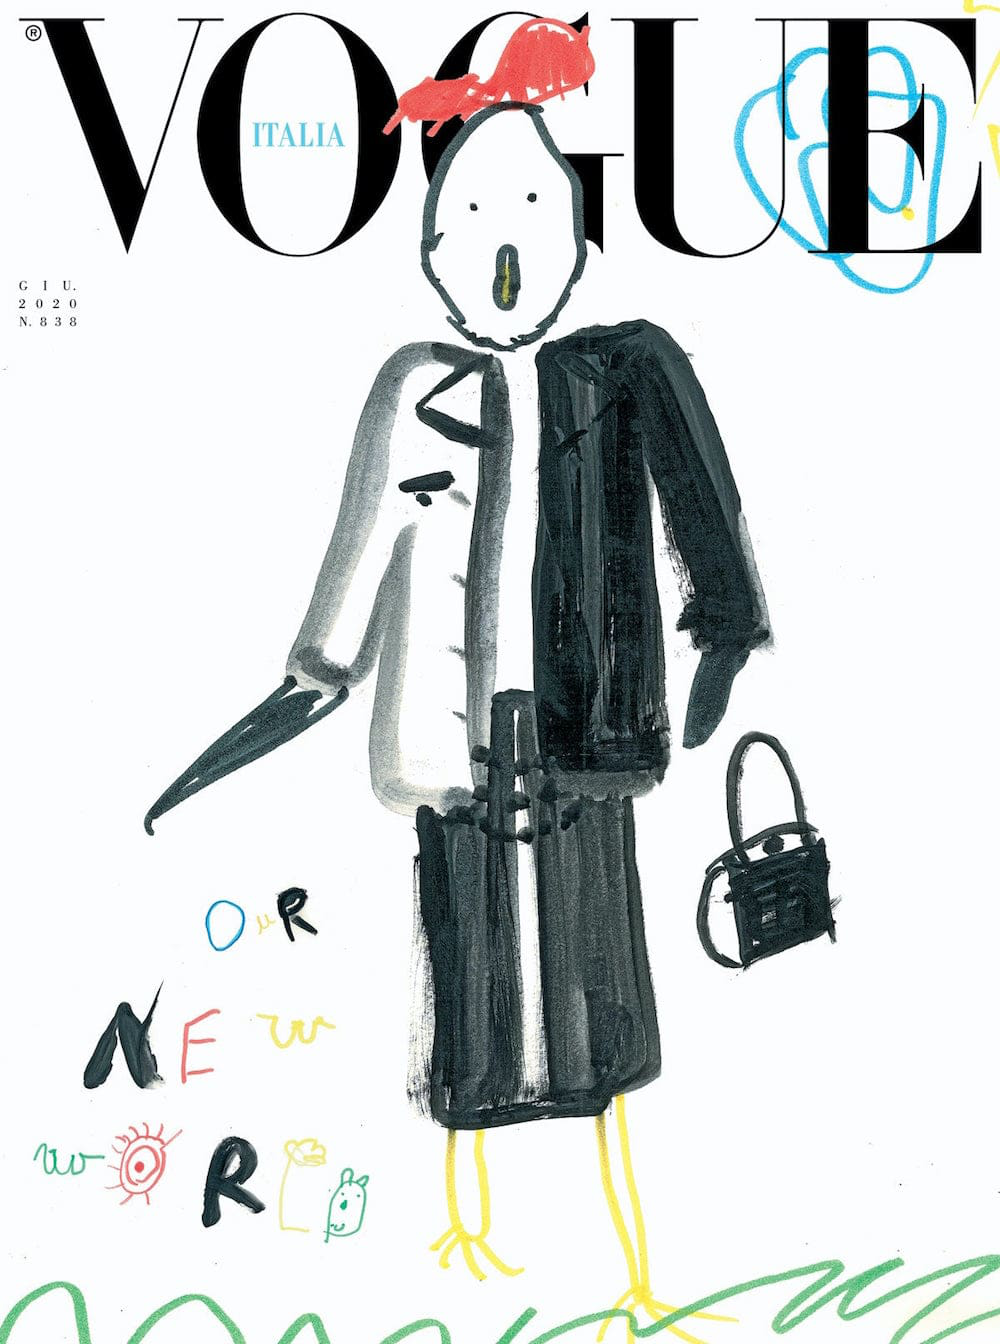 One of eight child drawings for Vogue Italia's June issue